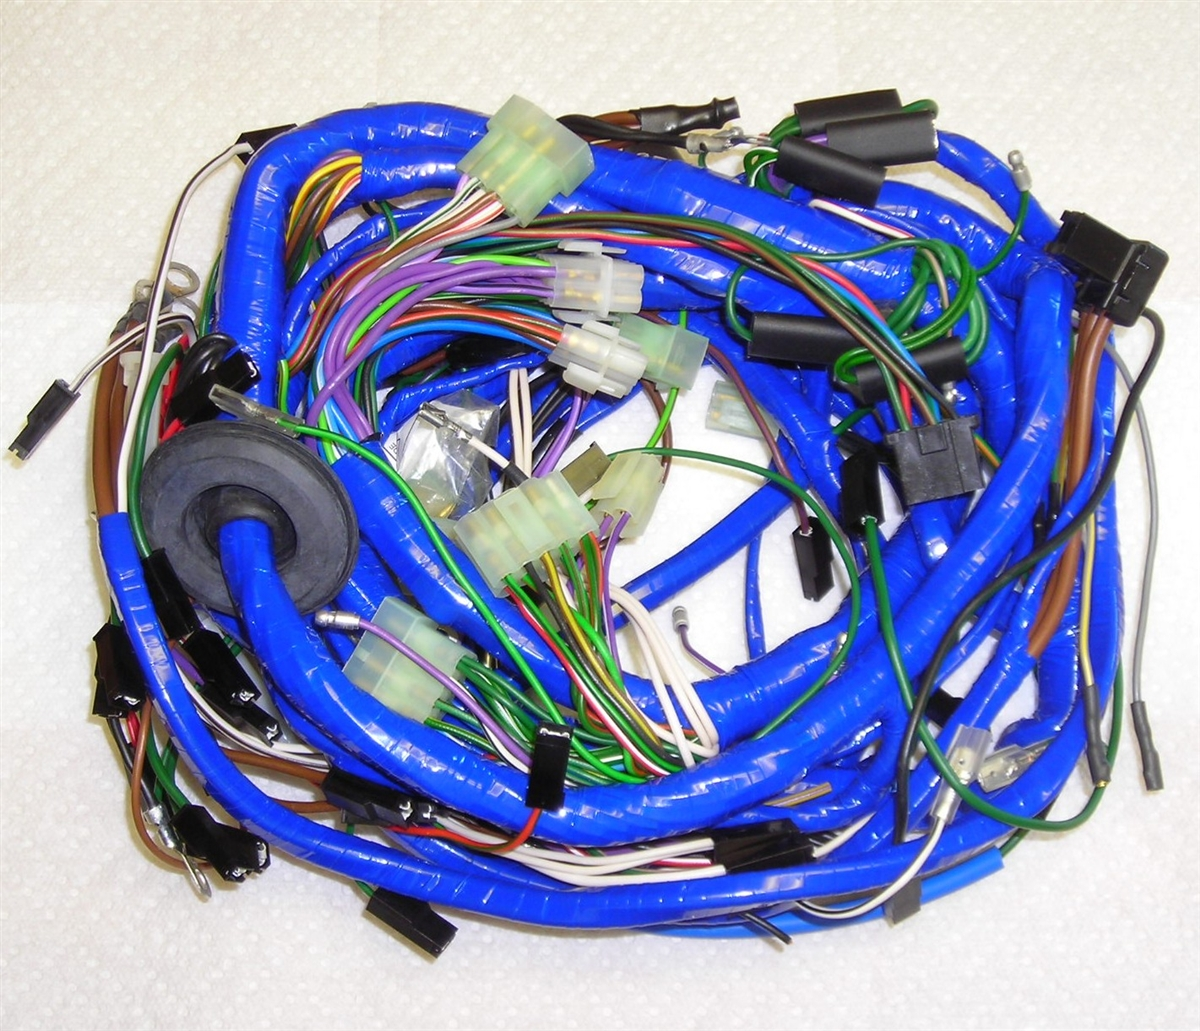 medium resolution of mgb 1980 main wiring harness 522 mgb headlight wiring diagram mgb wiring harness